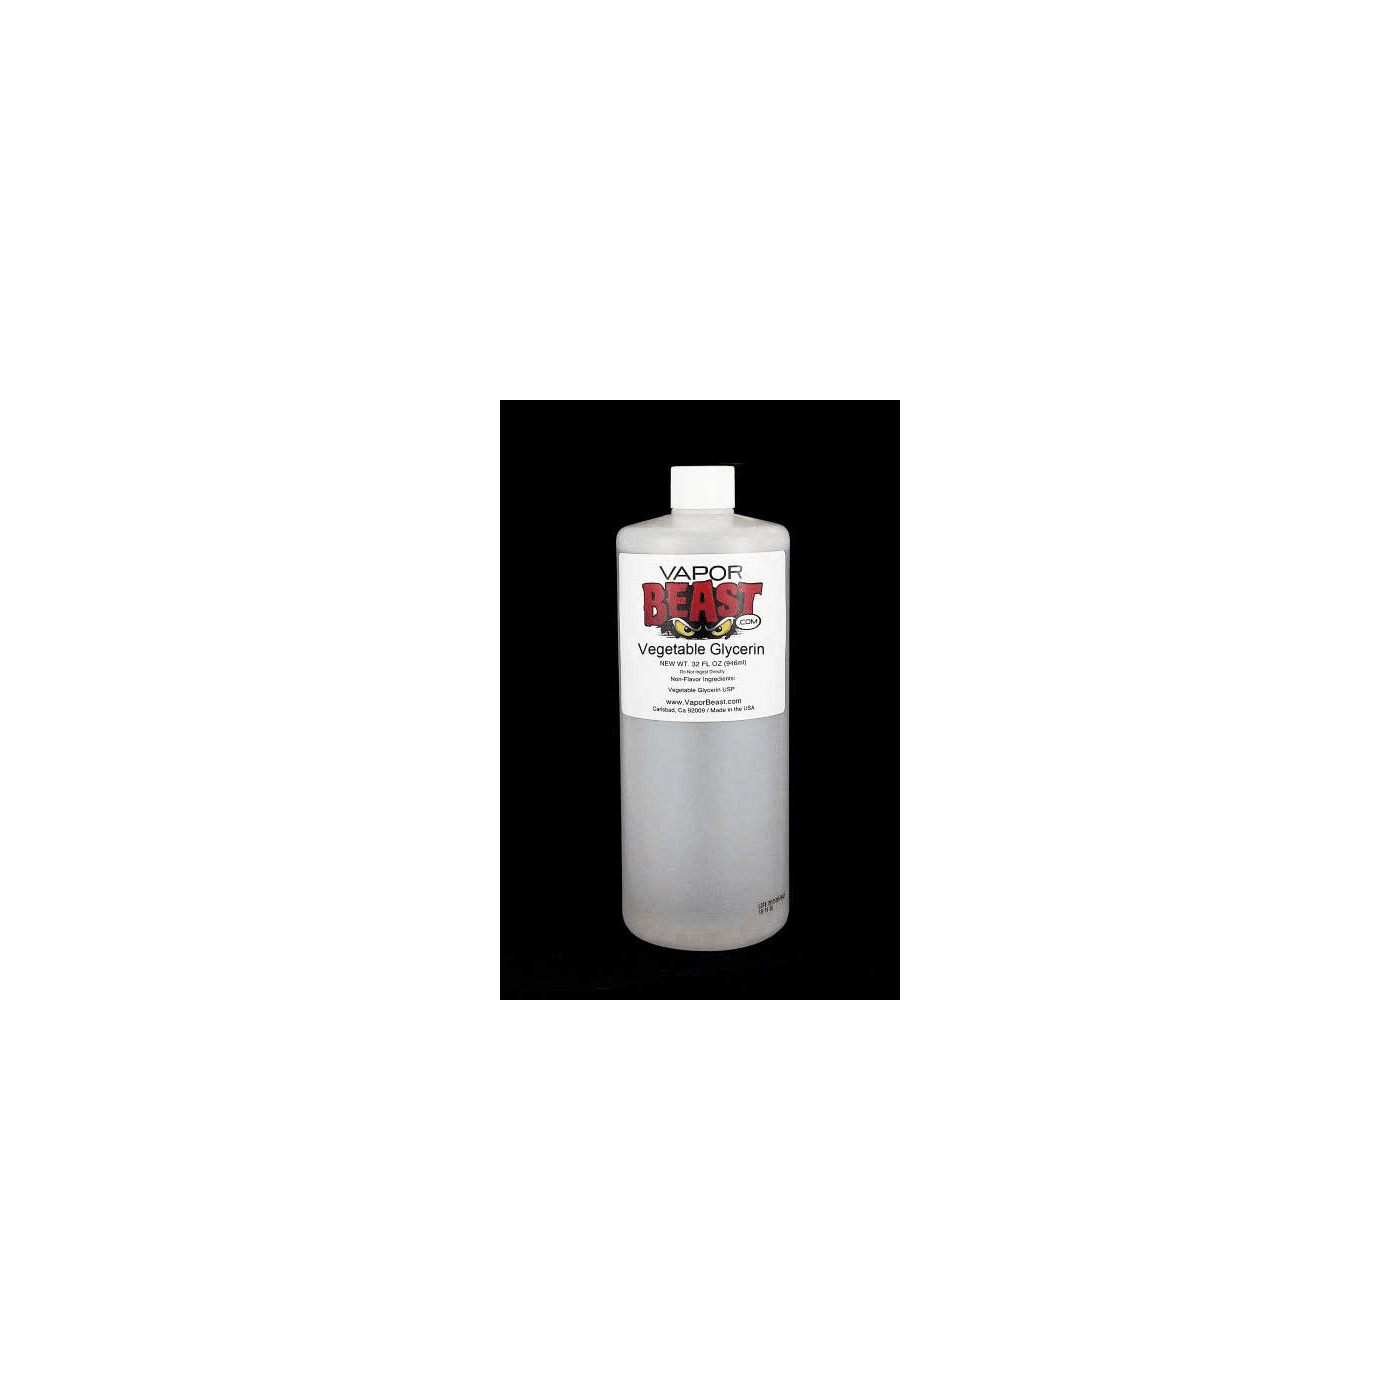 Vegetable Glycerin - 32 oz